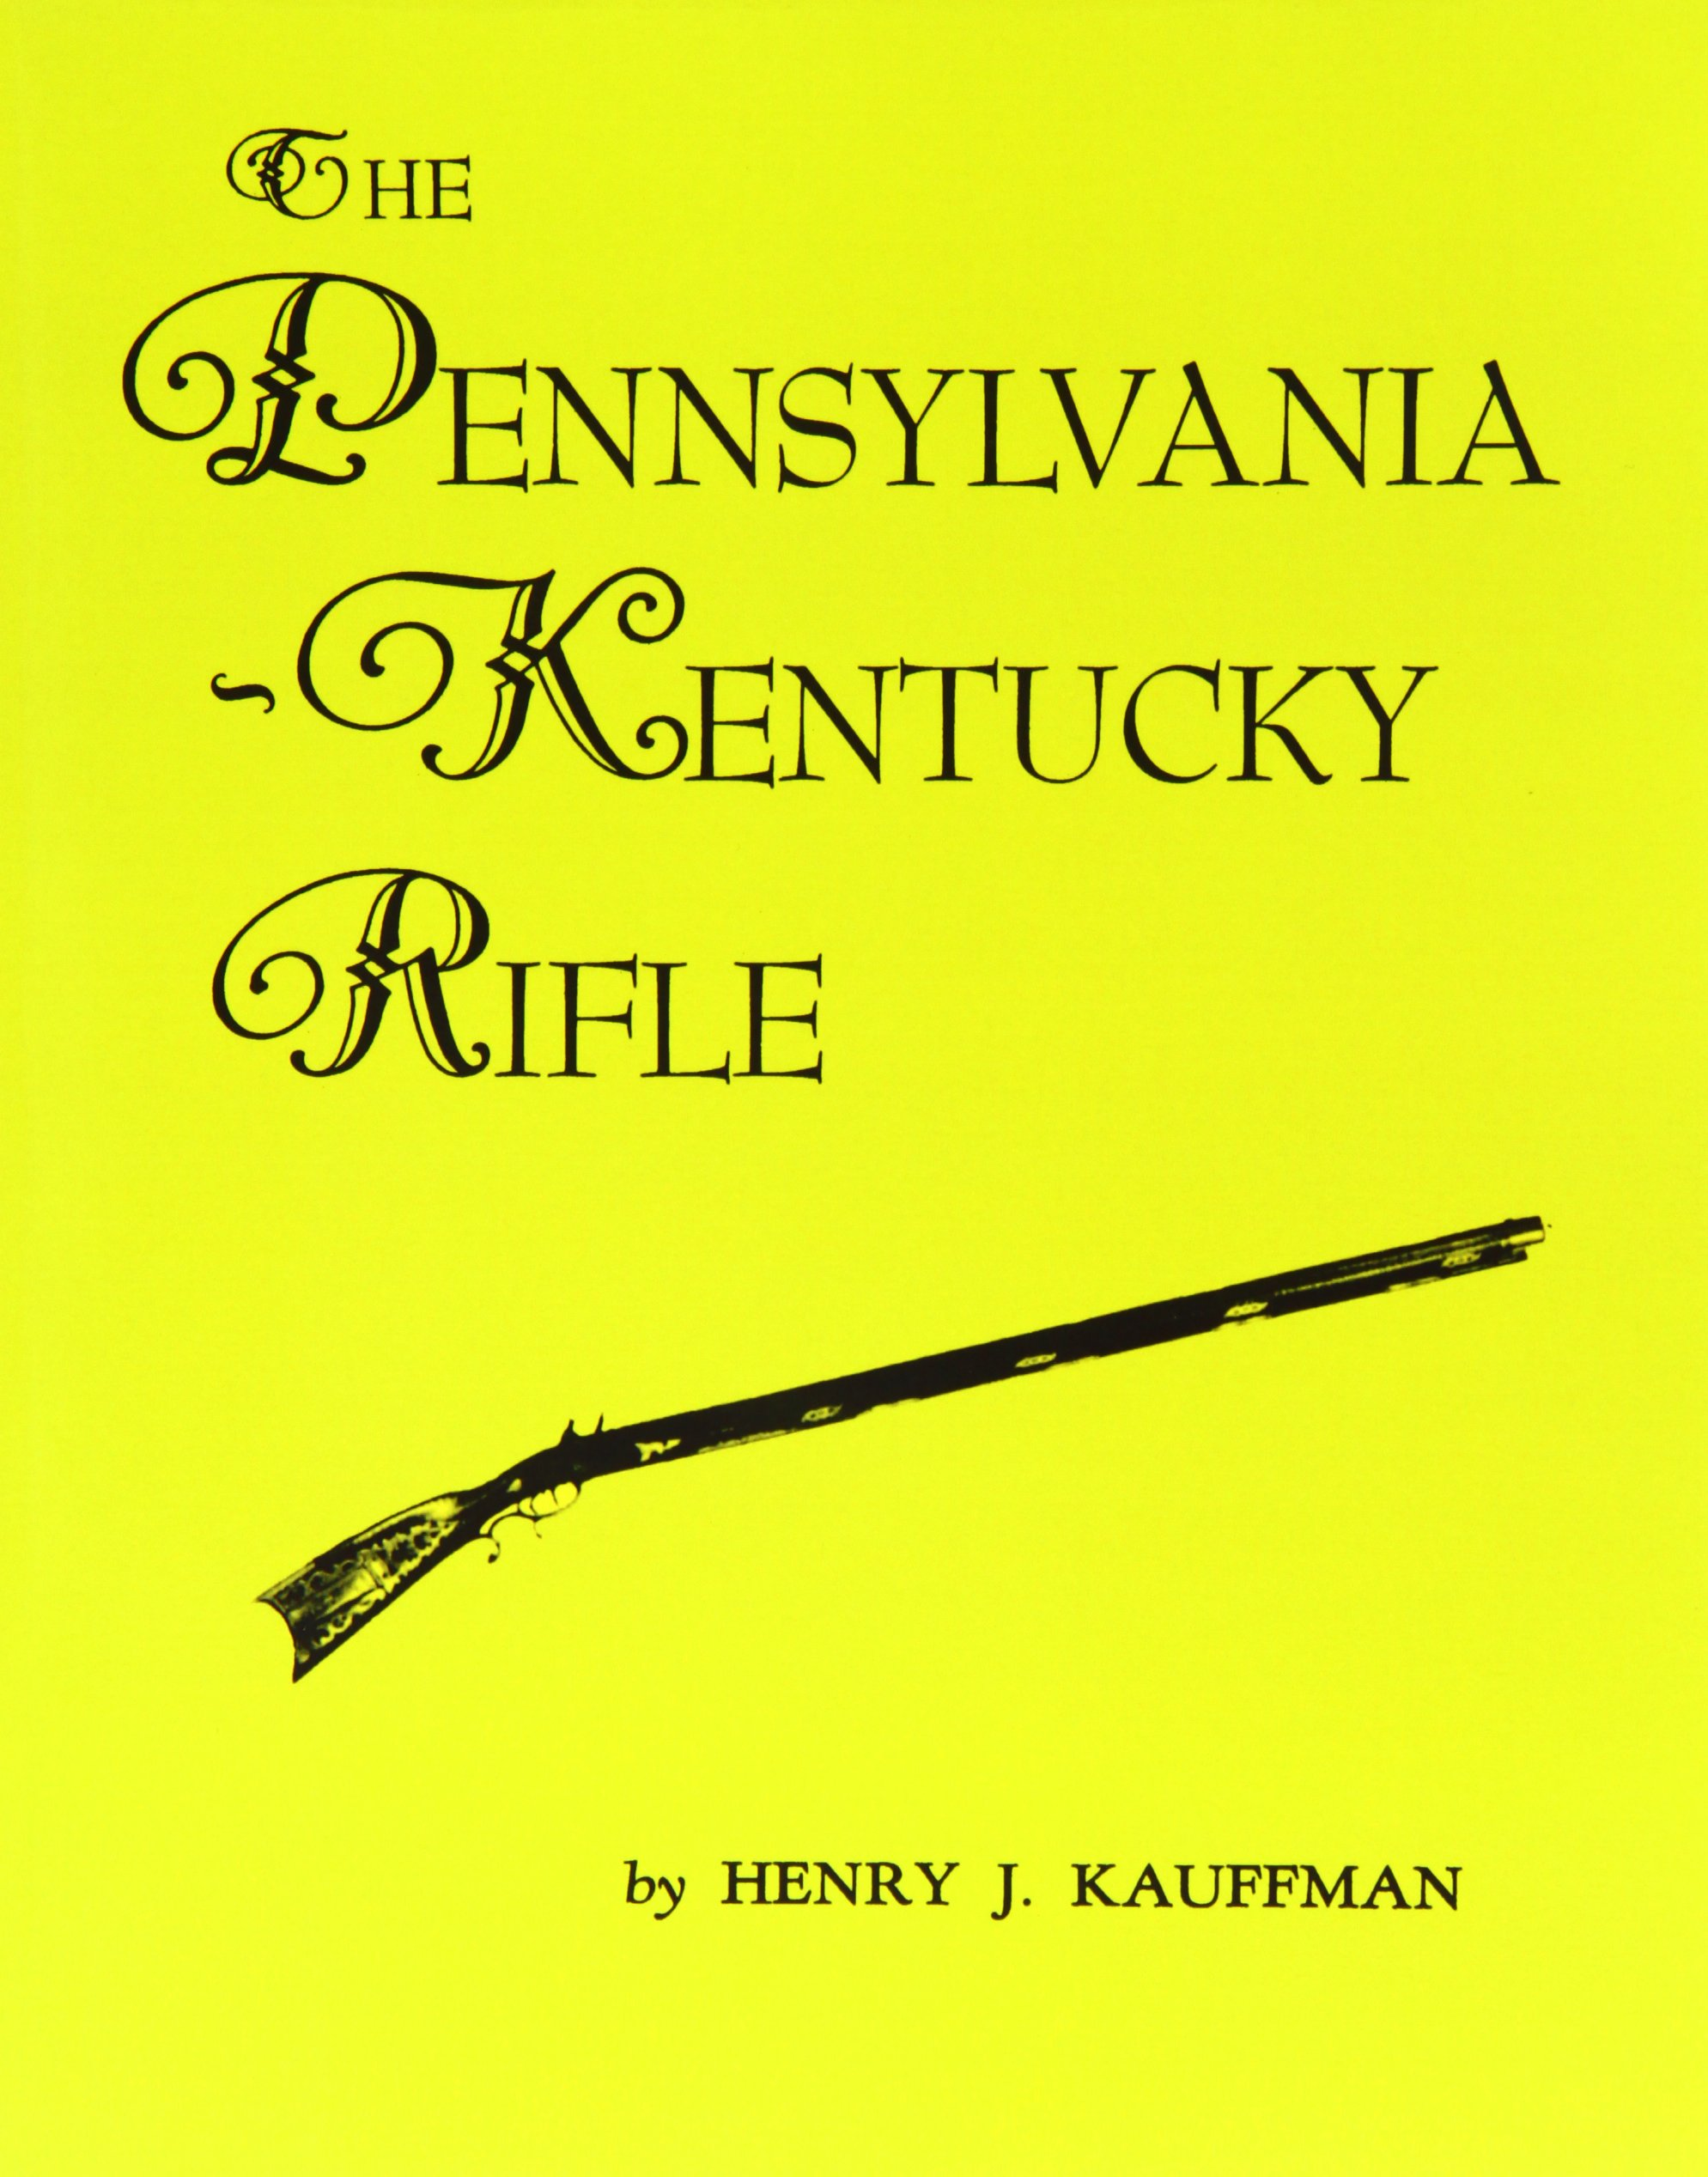 The Pennsylvania - Kentucky Rifle